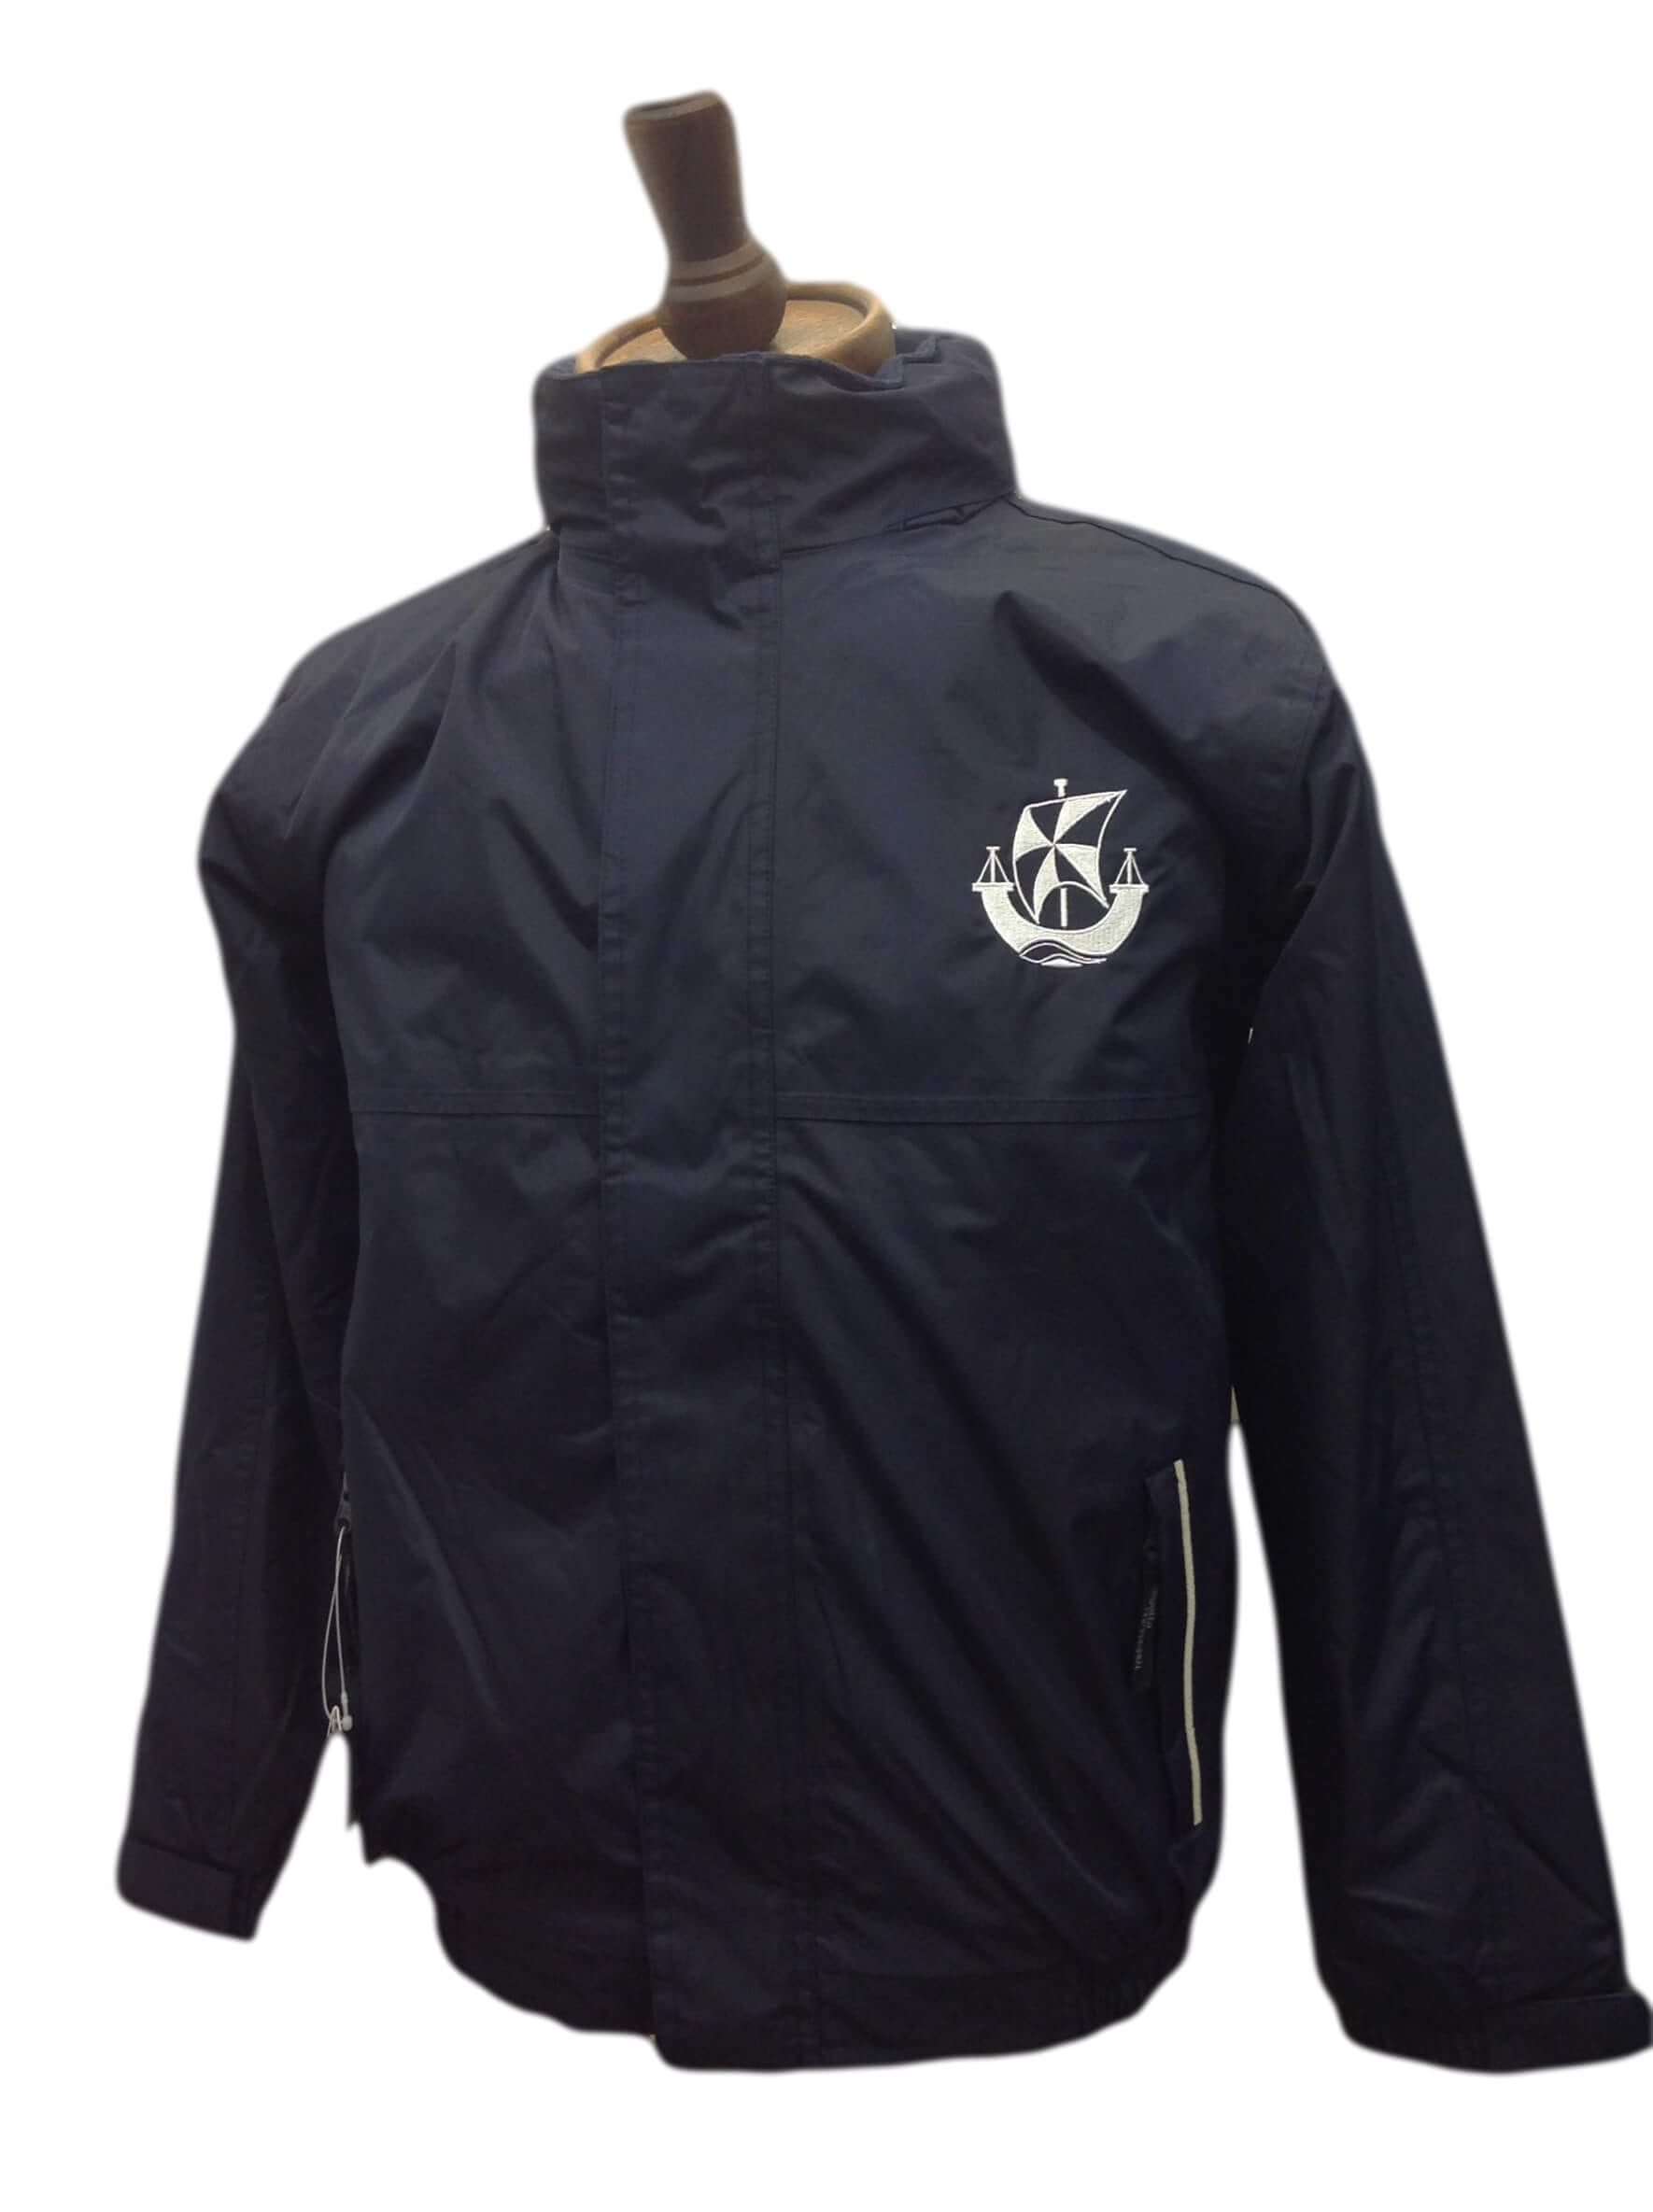 Winter Jacket - Regatta *Old Style*